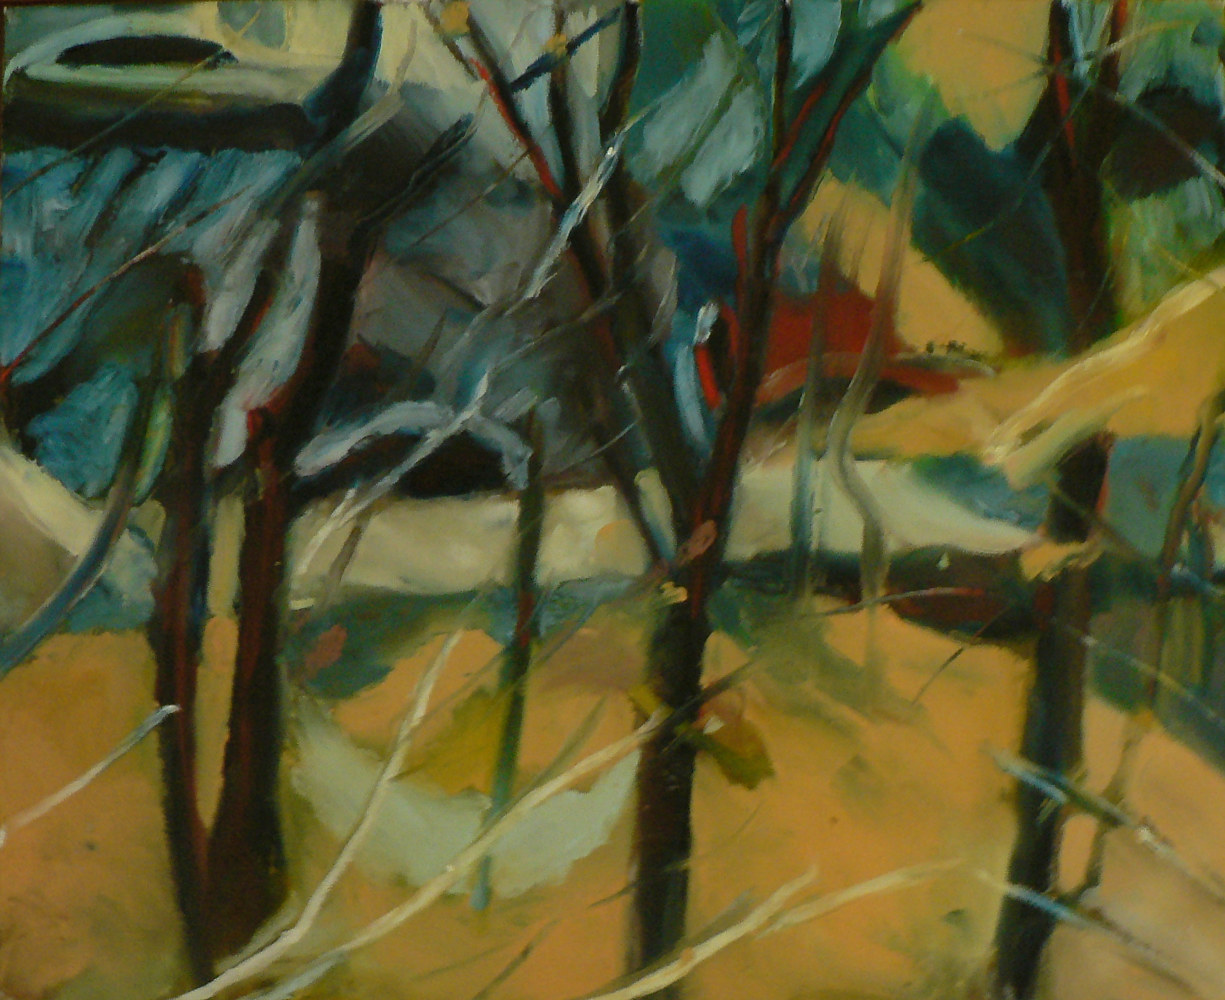 Early Spring, (Oil Sketch) on canvas by Michael louis Johnson